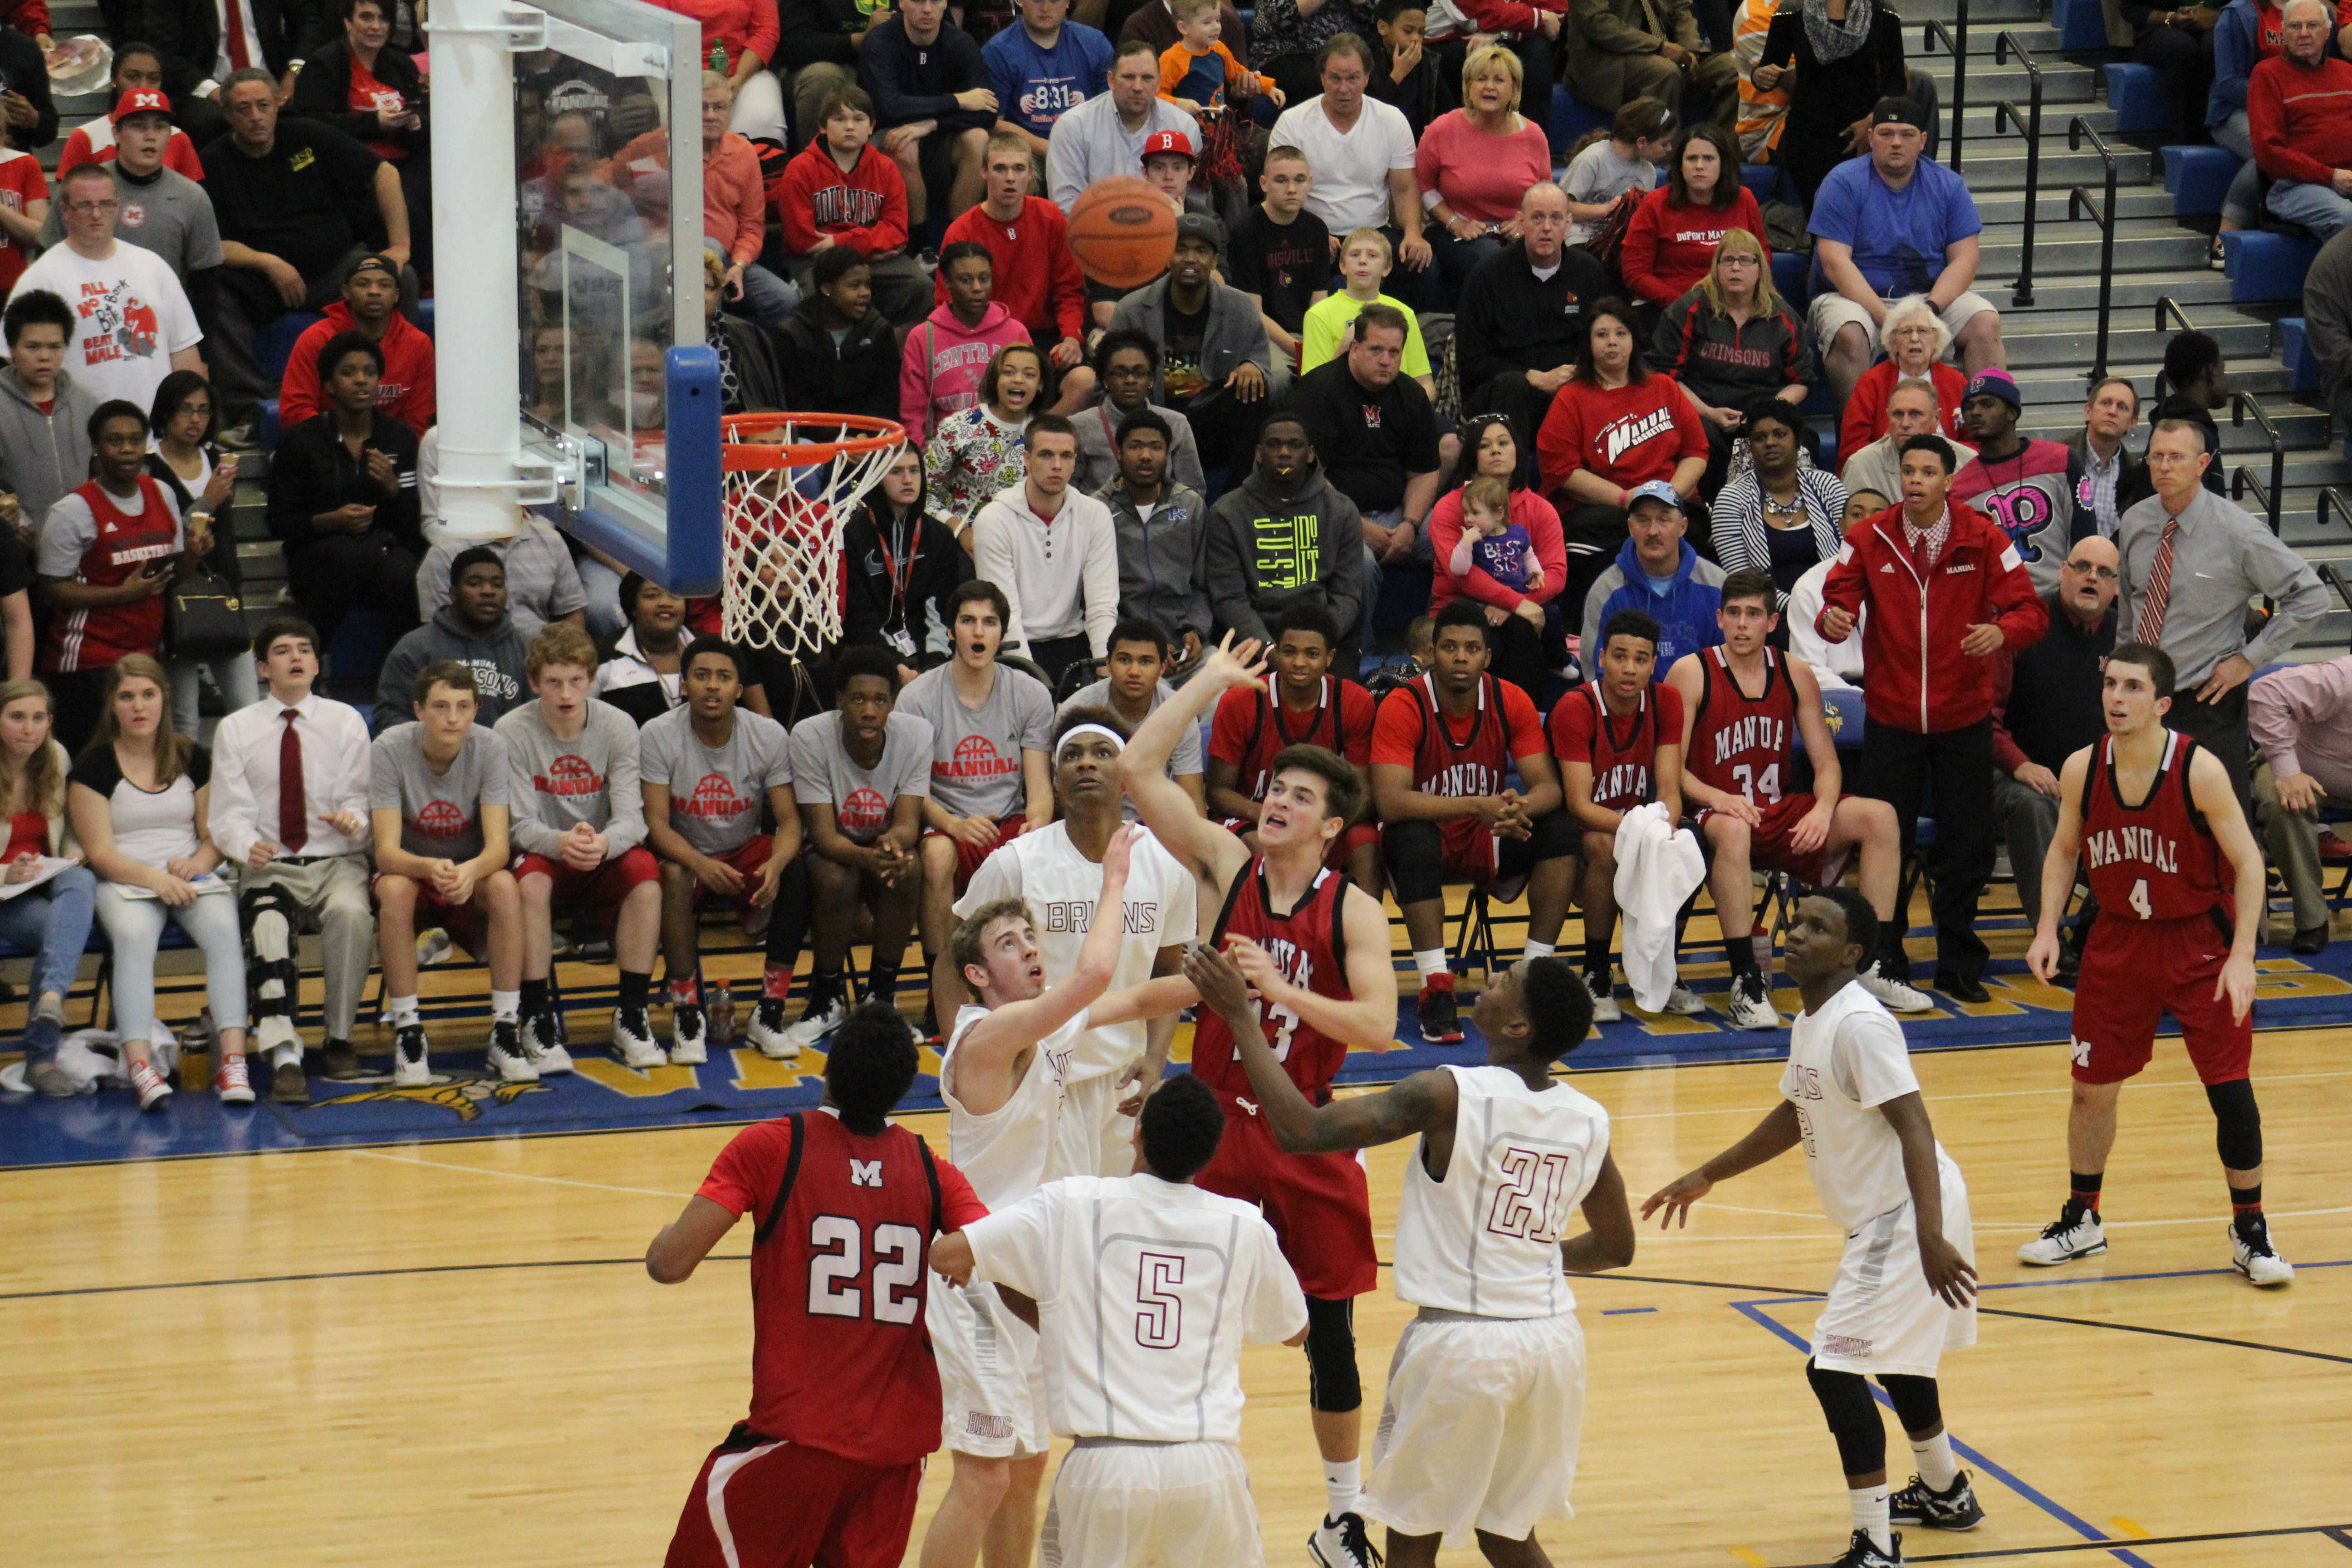 Eric Neiman (#33) jumps for a rebound during the middle of the third quarter.